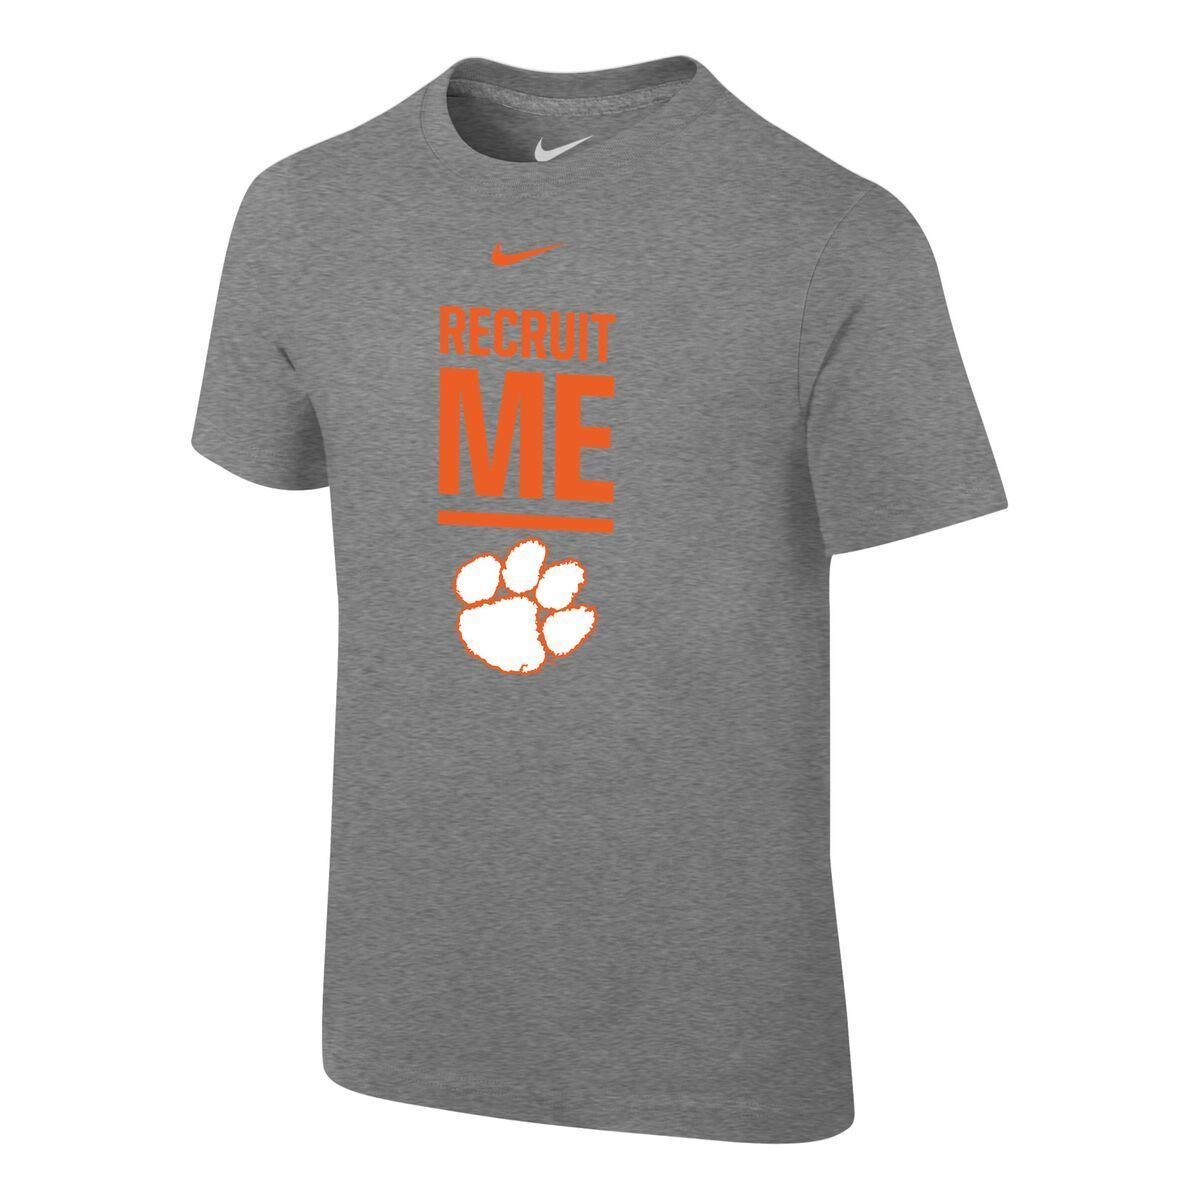 Nike Preschool Dri-fit Recruit Me Tee - Mr. Knickerbocker